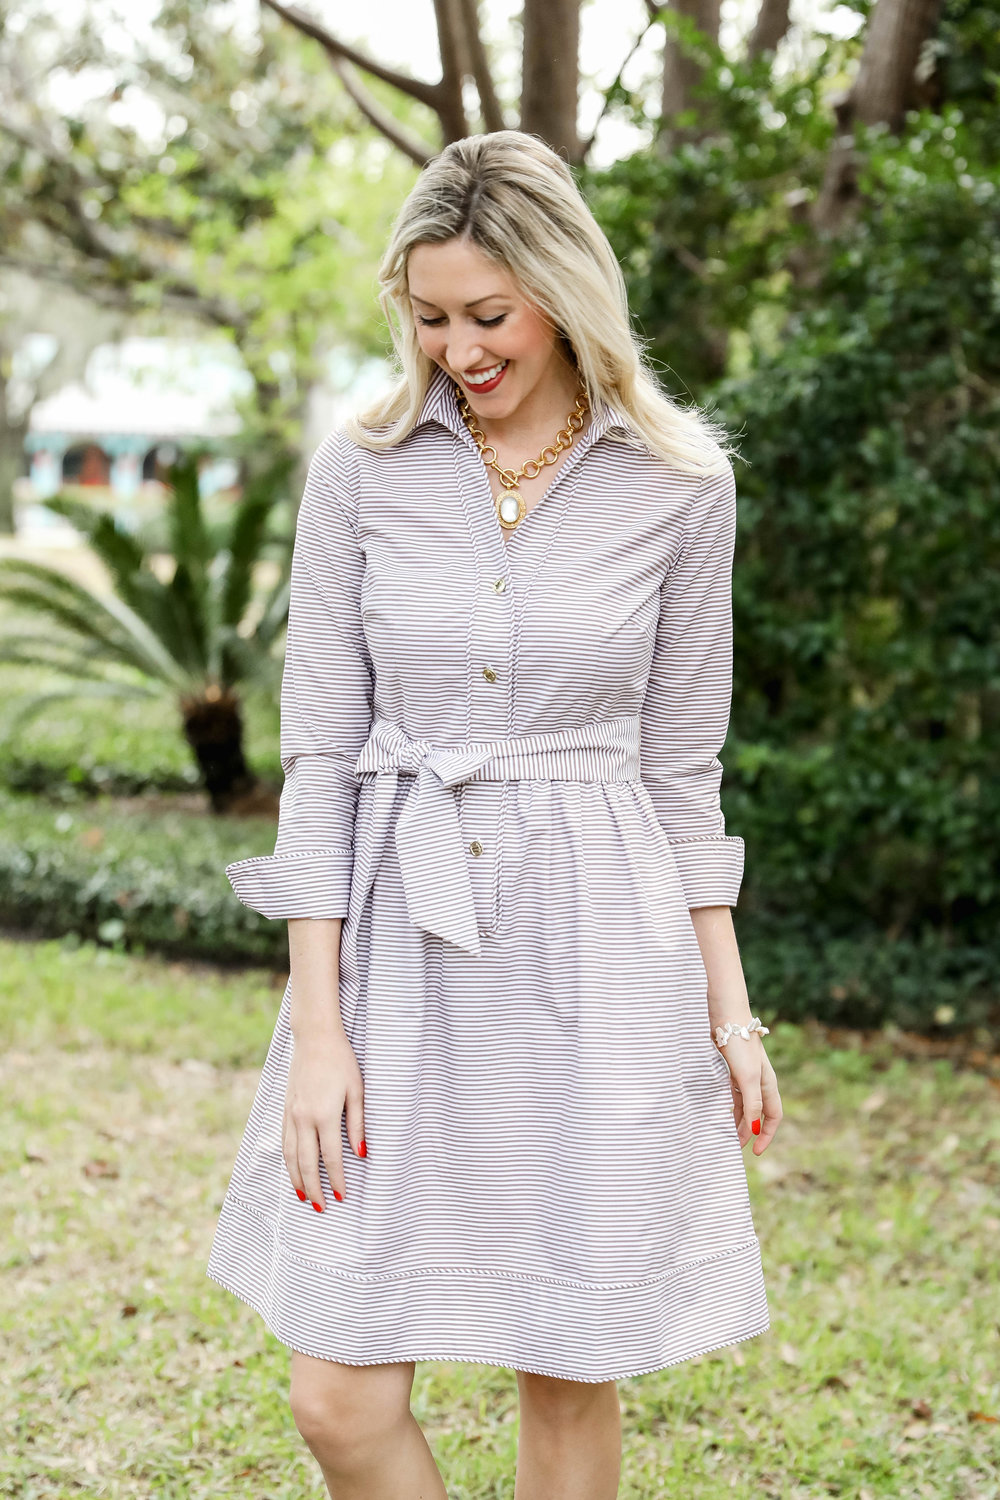 Two Friends St. Simons Island Styling Guide